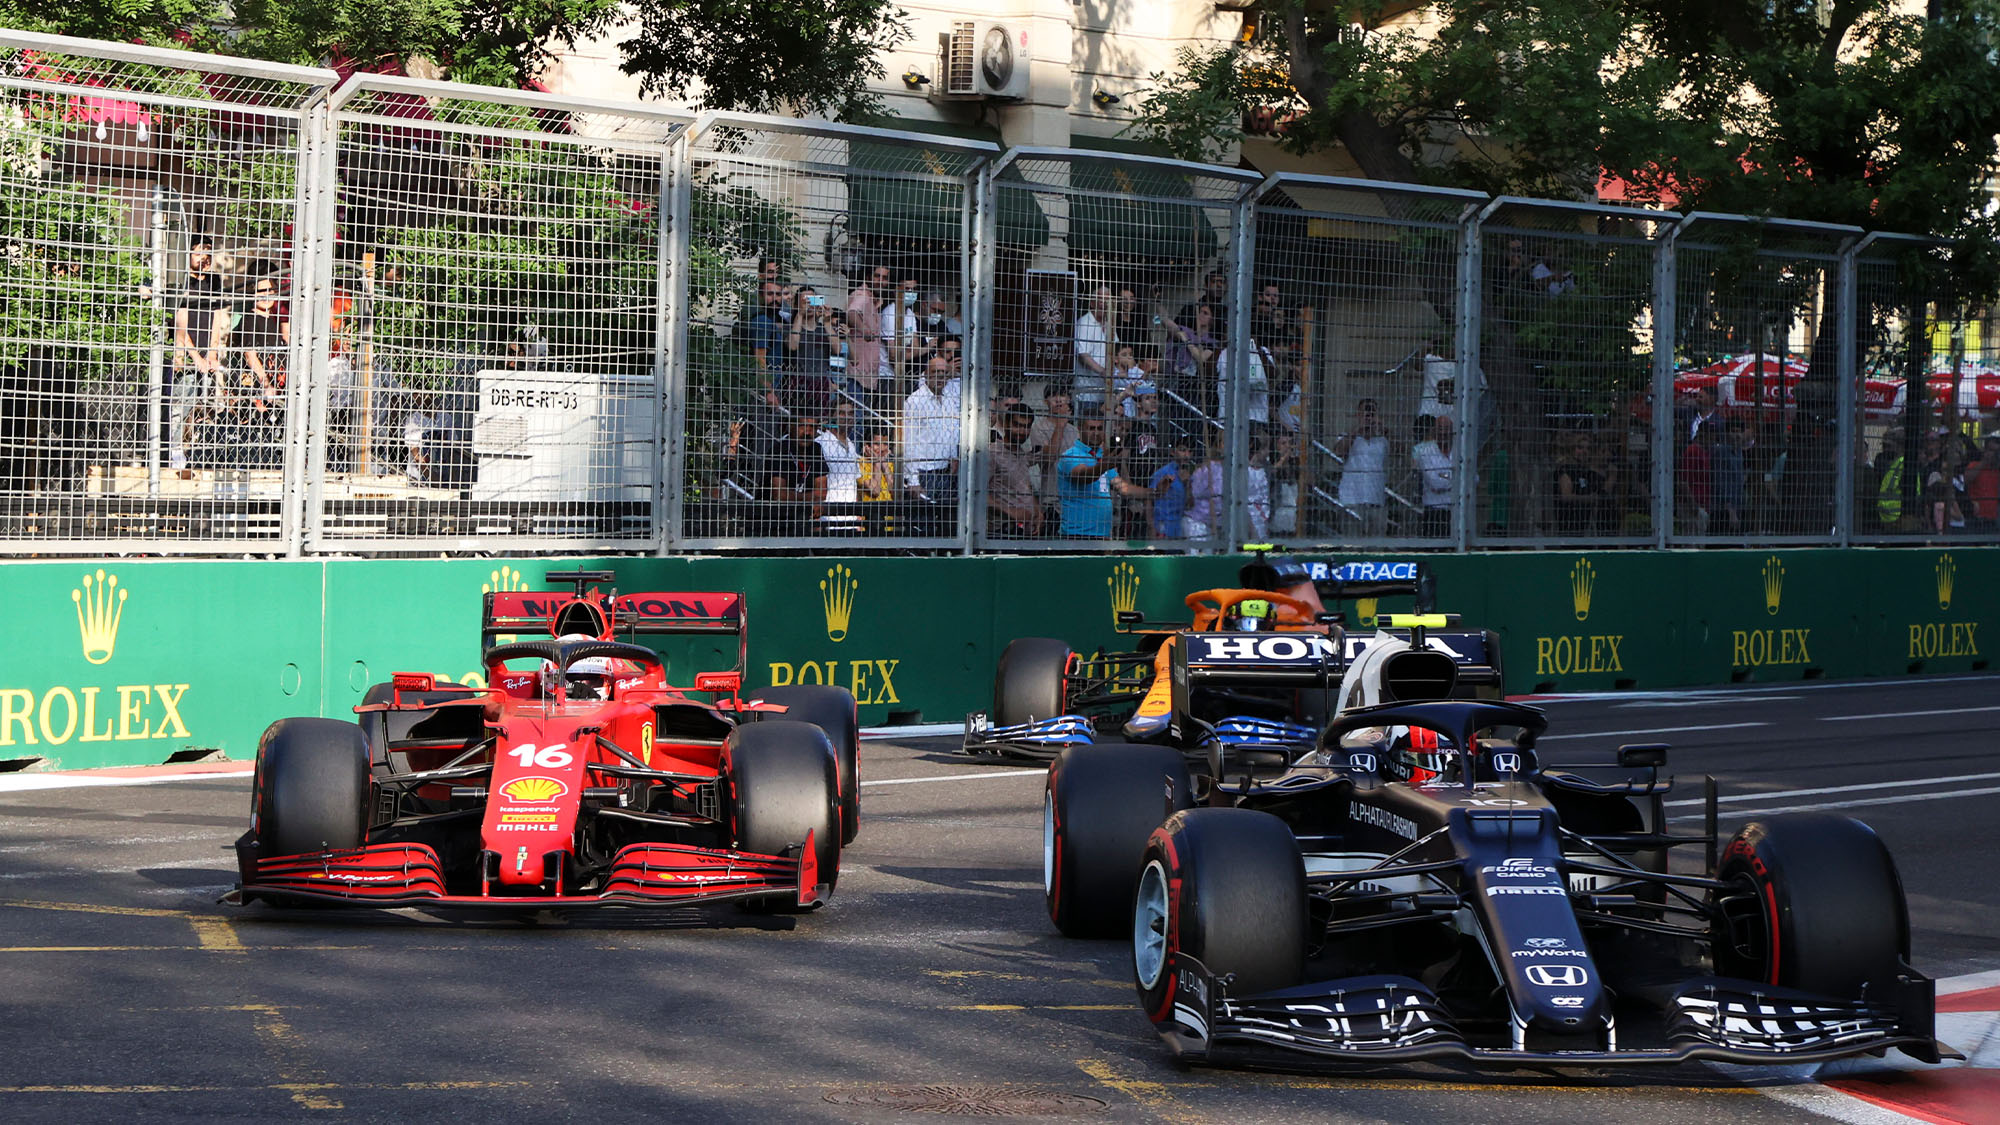 Charles Leclerc battles with Pierre Gasly in the 2021 Azerbaijan GP